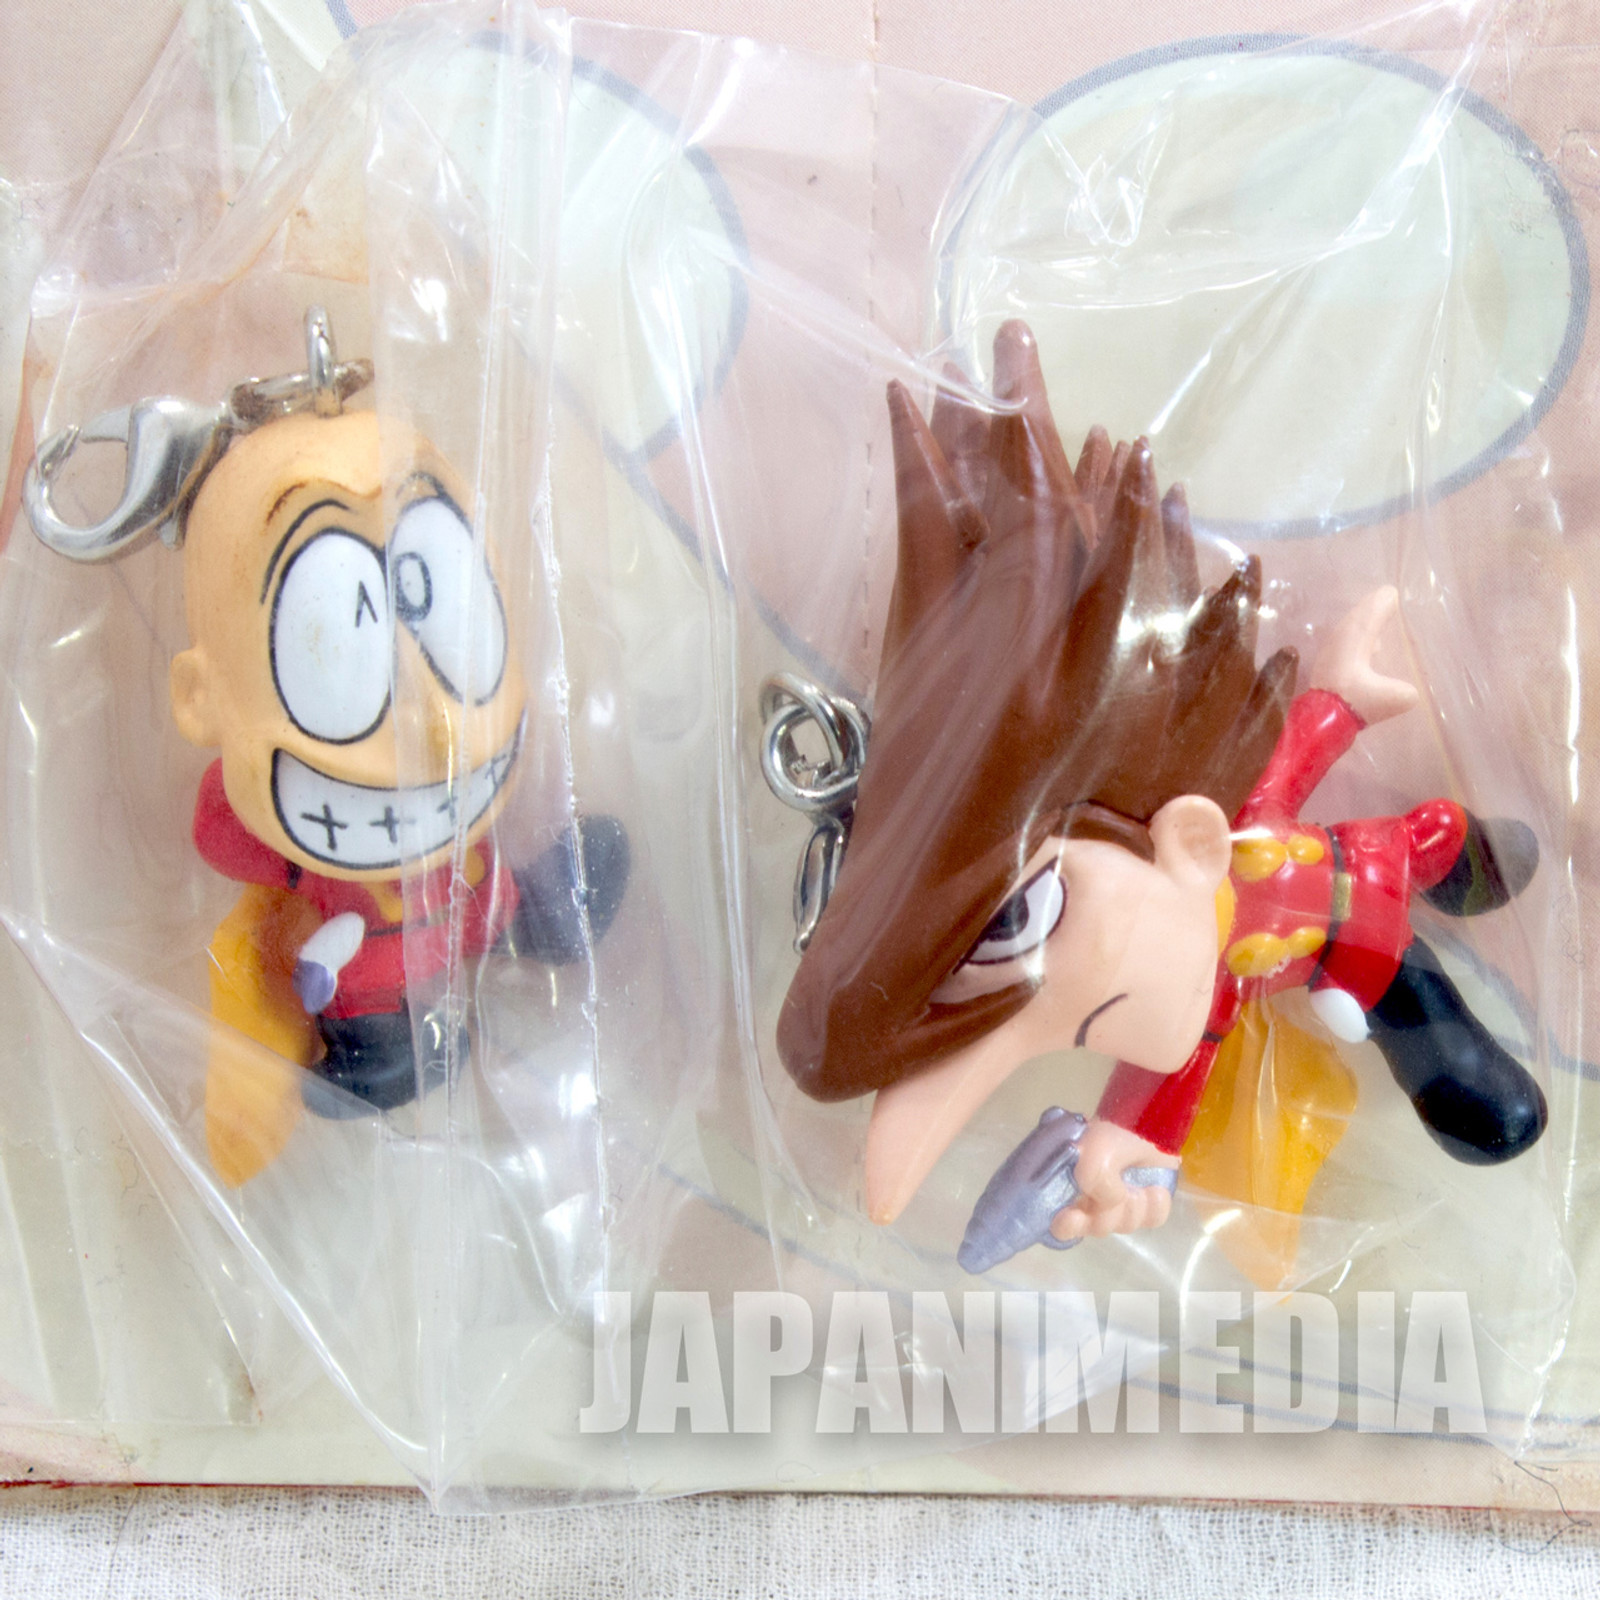 Cyborg 009 Ivano Ruocco 002 + Great Britain 007 Figure Mascot JAPAN ANIME